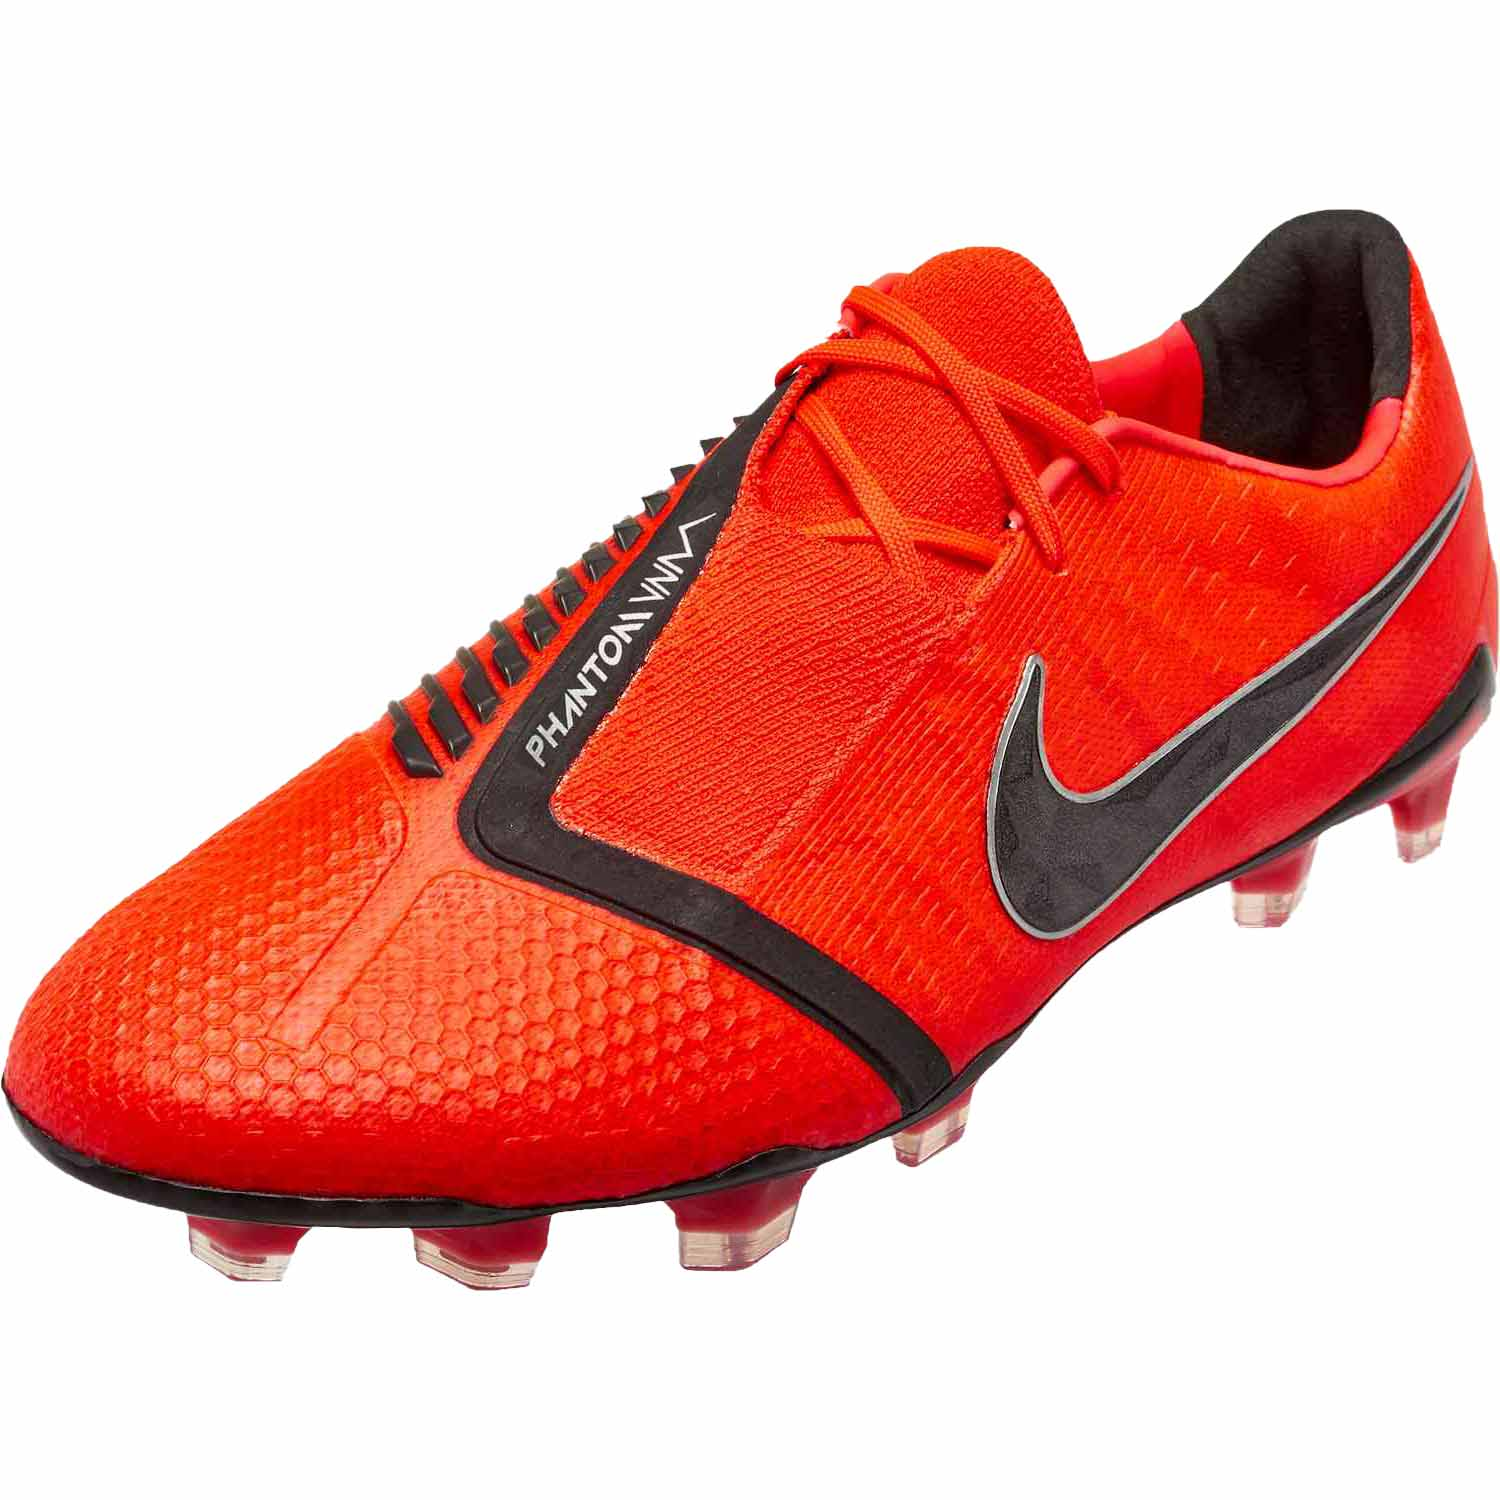 0744e59141e Nike Phantom Venom Elite FG - Game Over - SoccerPro